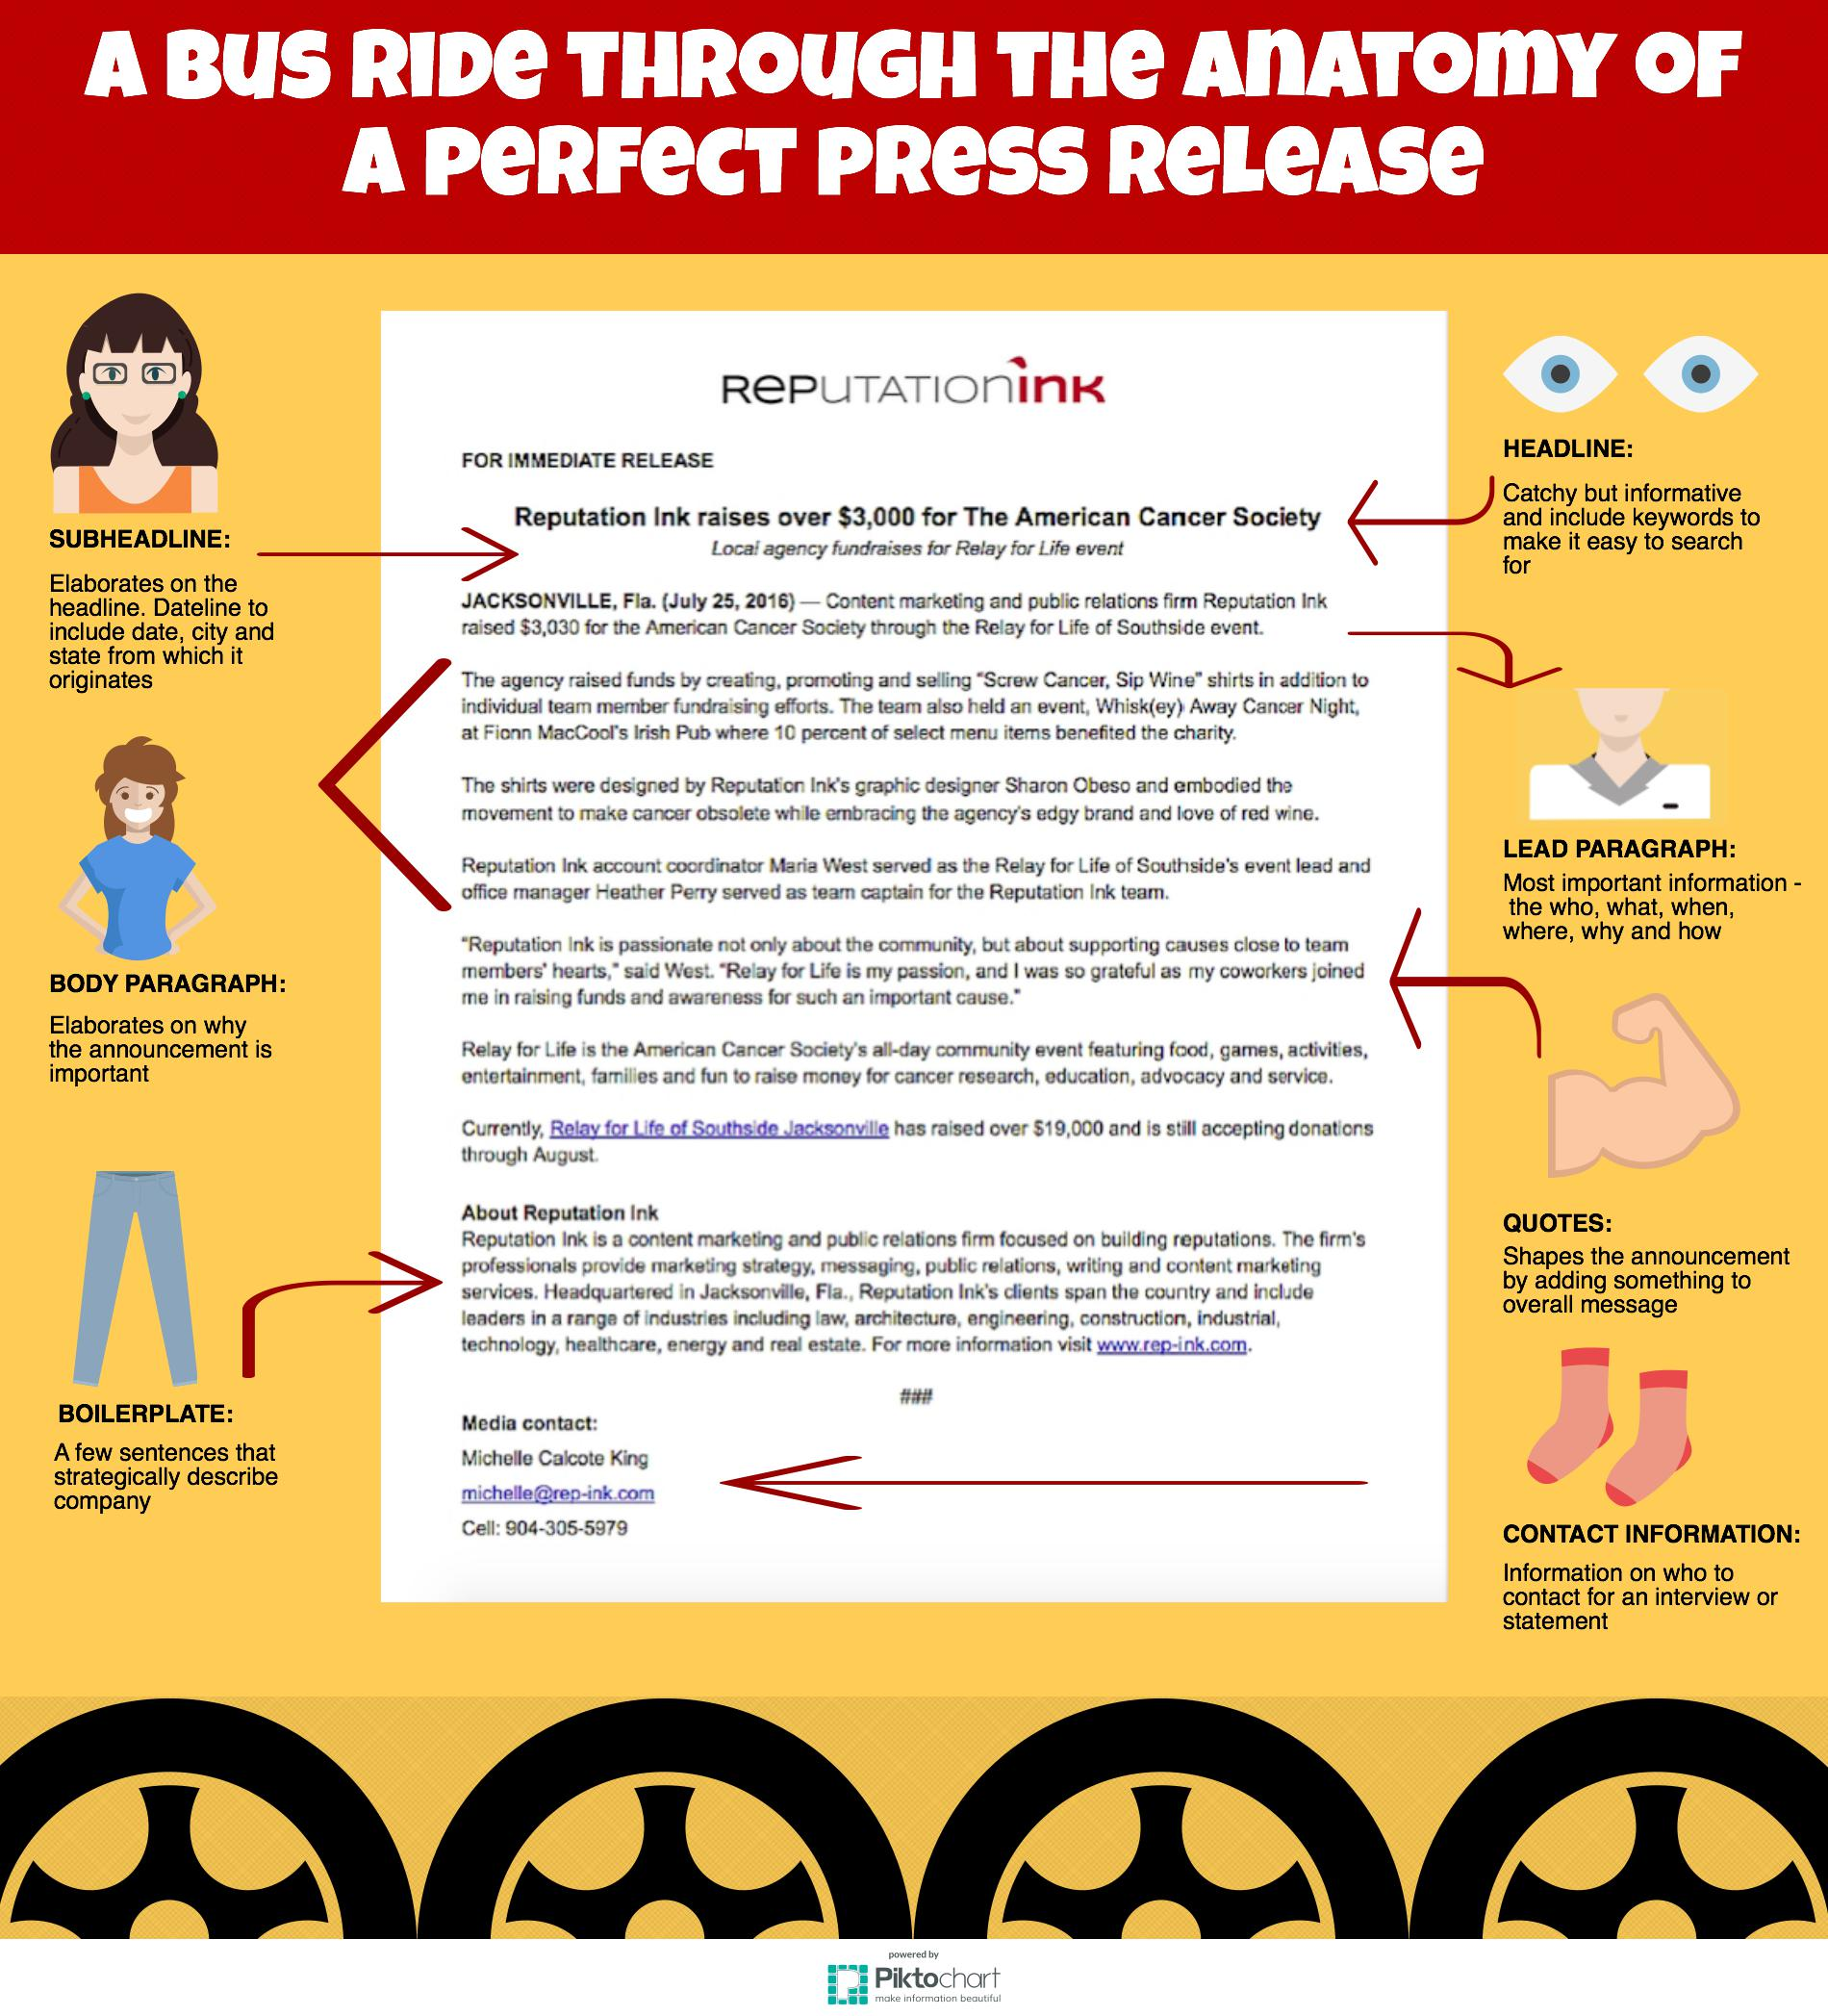 What to include in the perfect press release |